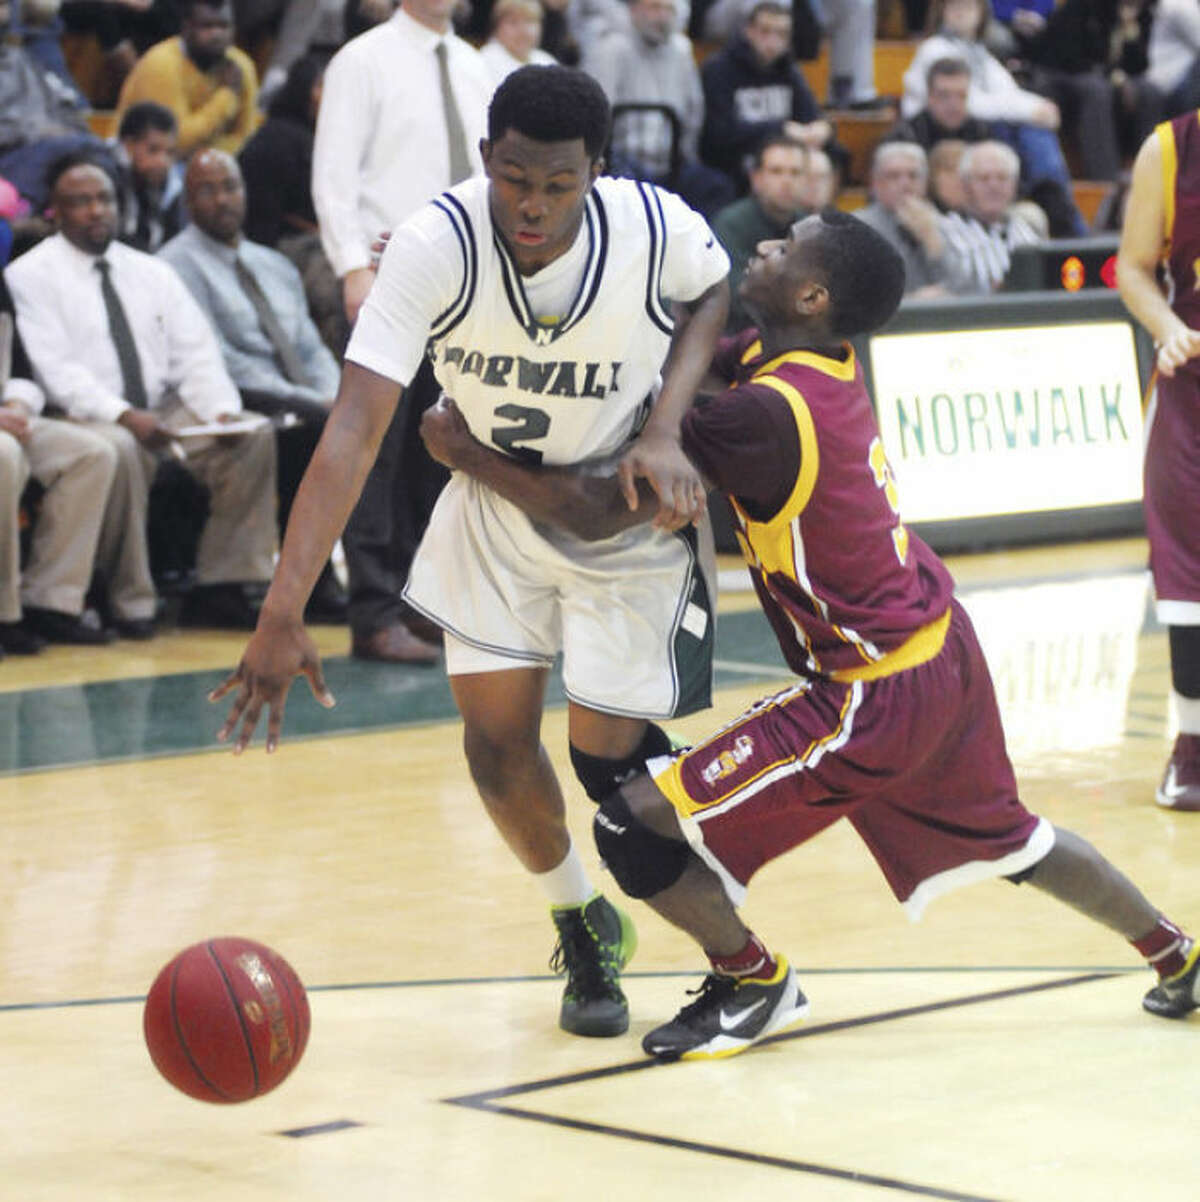 Hour photo/John Nash Norwalk's Zaire Wilson, left, is fouled by St. Joseph guard Raekwon Reid during the fourth quarter of Friday's game at Scarso Gym.